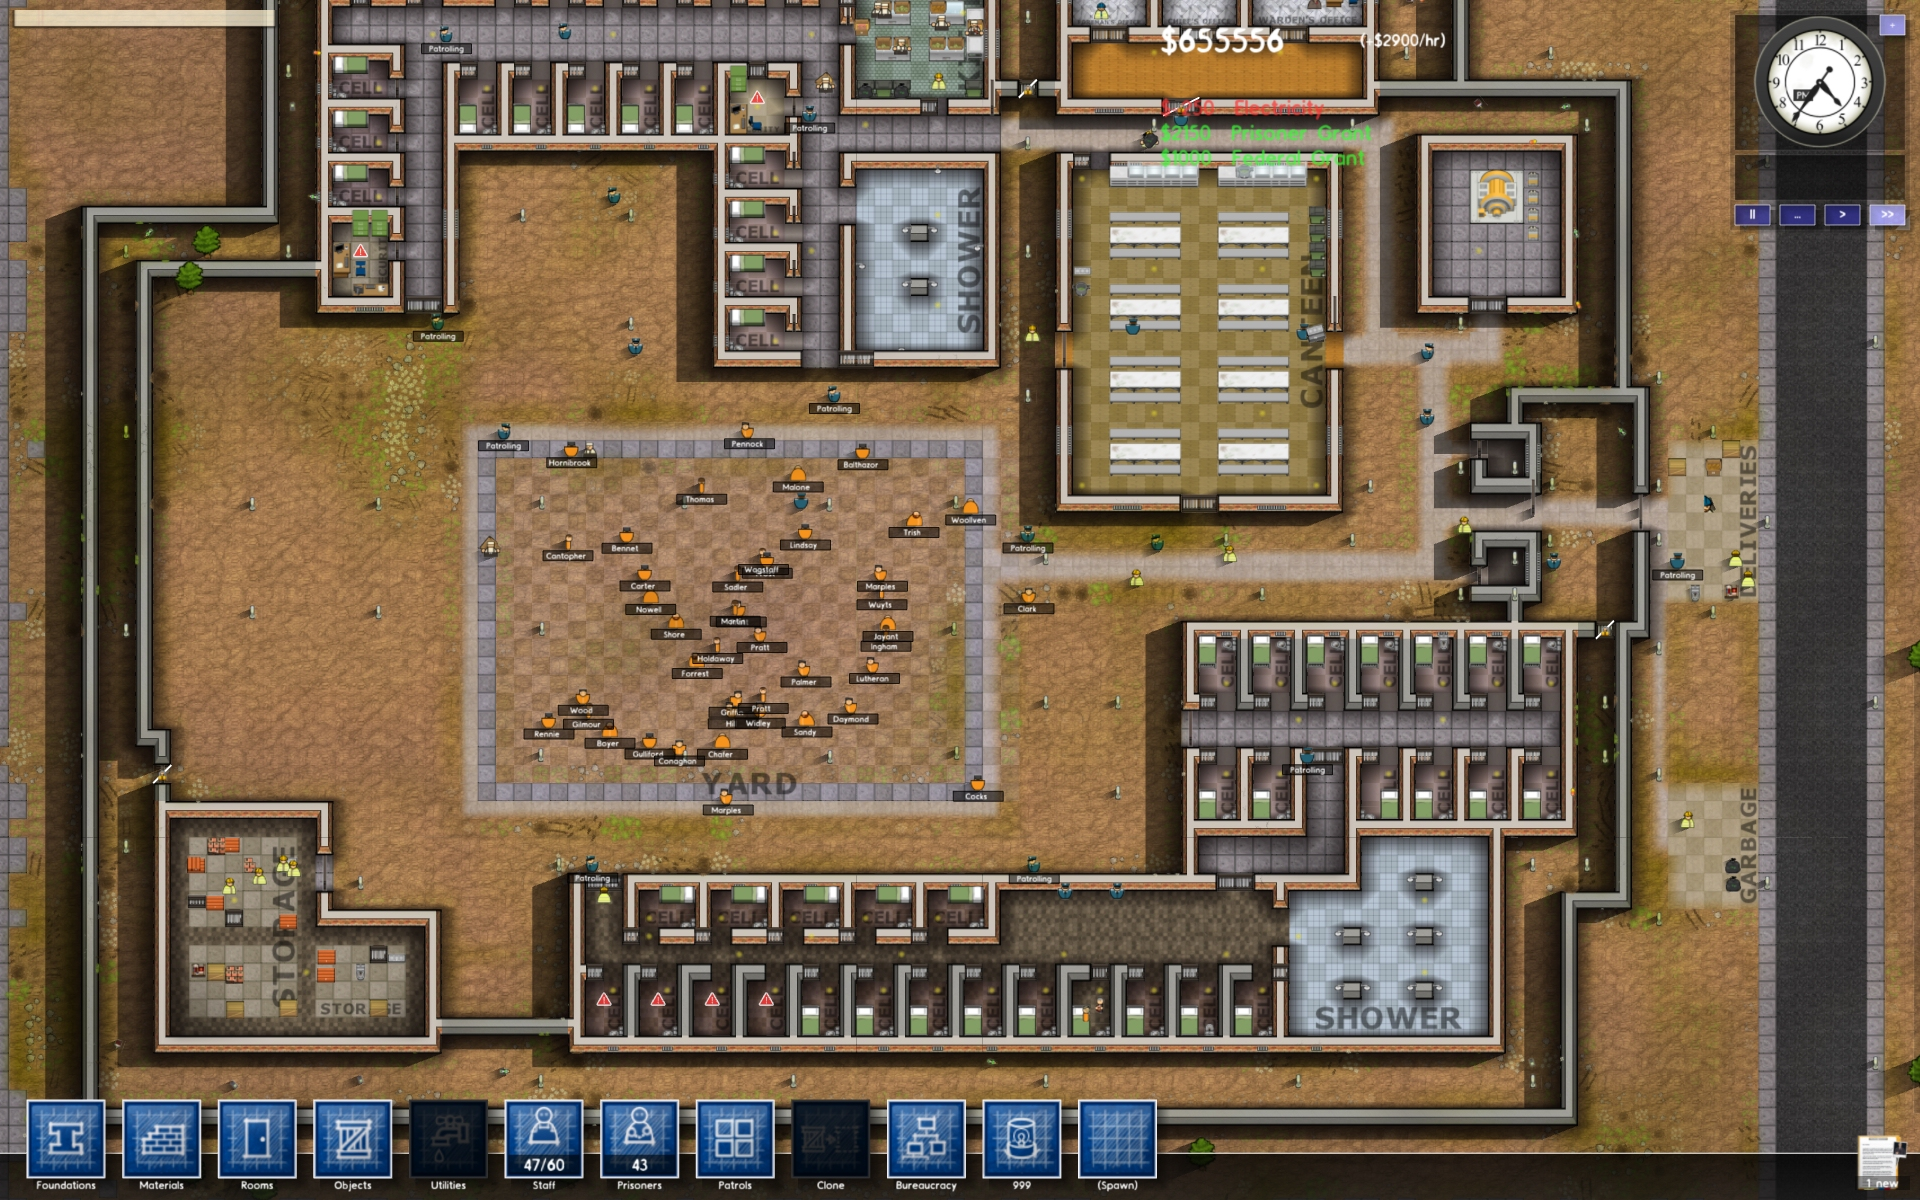 Prison Architect isn't coming to tablets this month, but it might come later this year